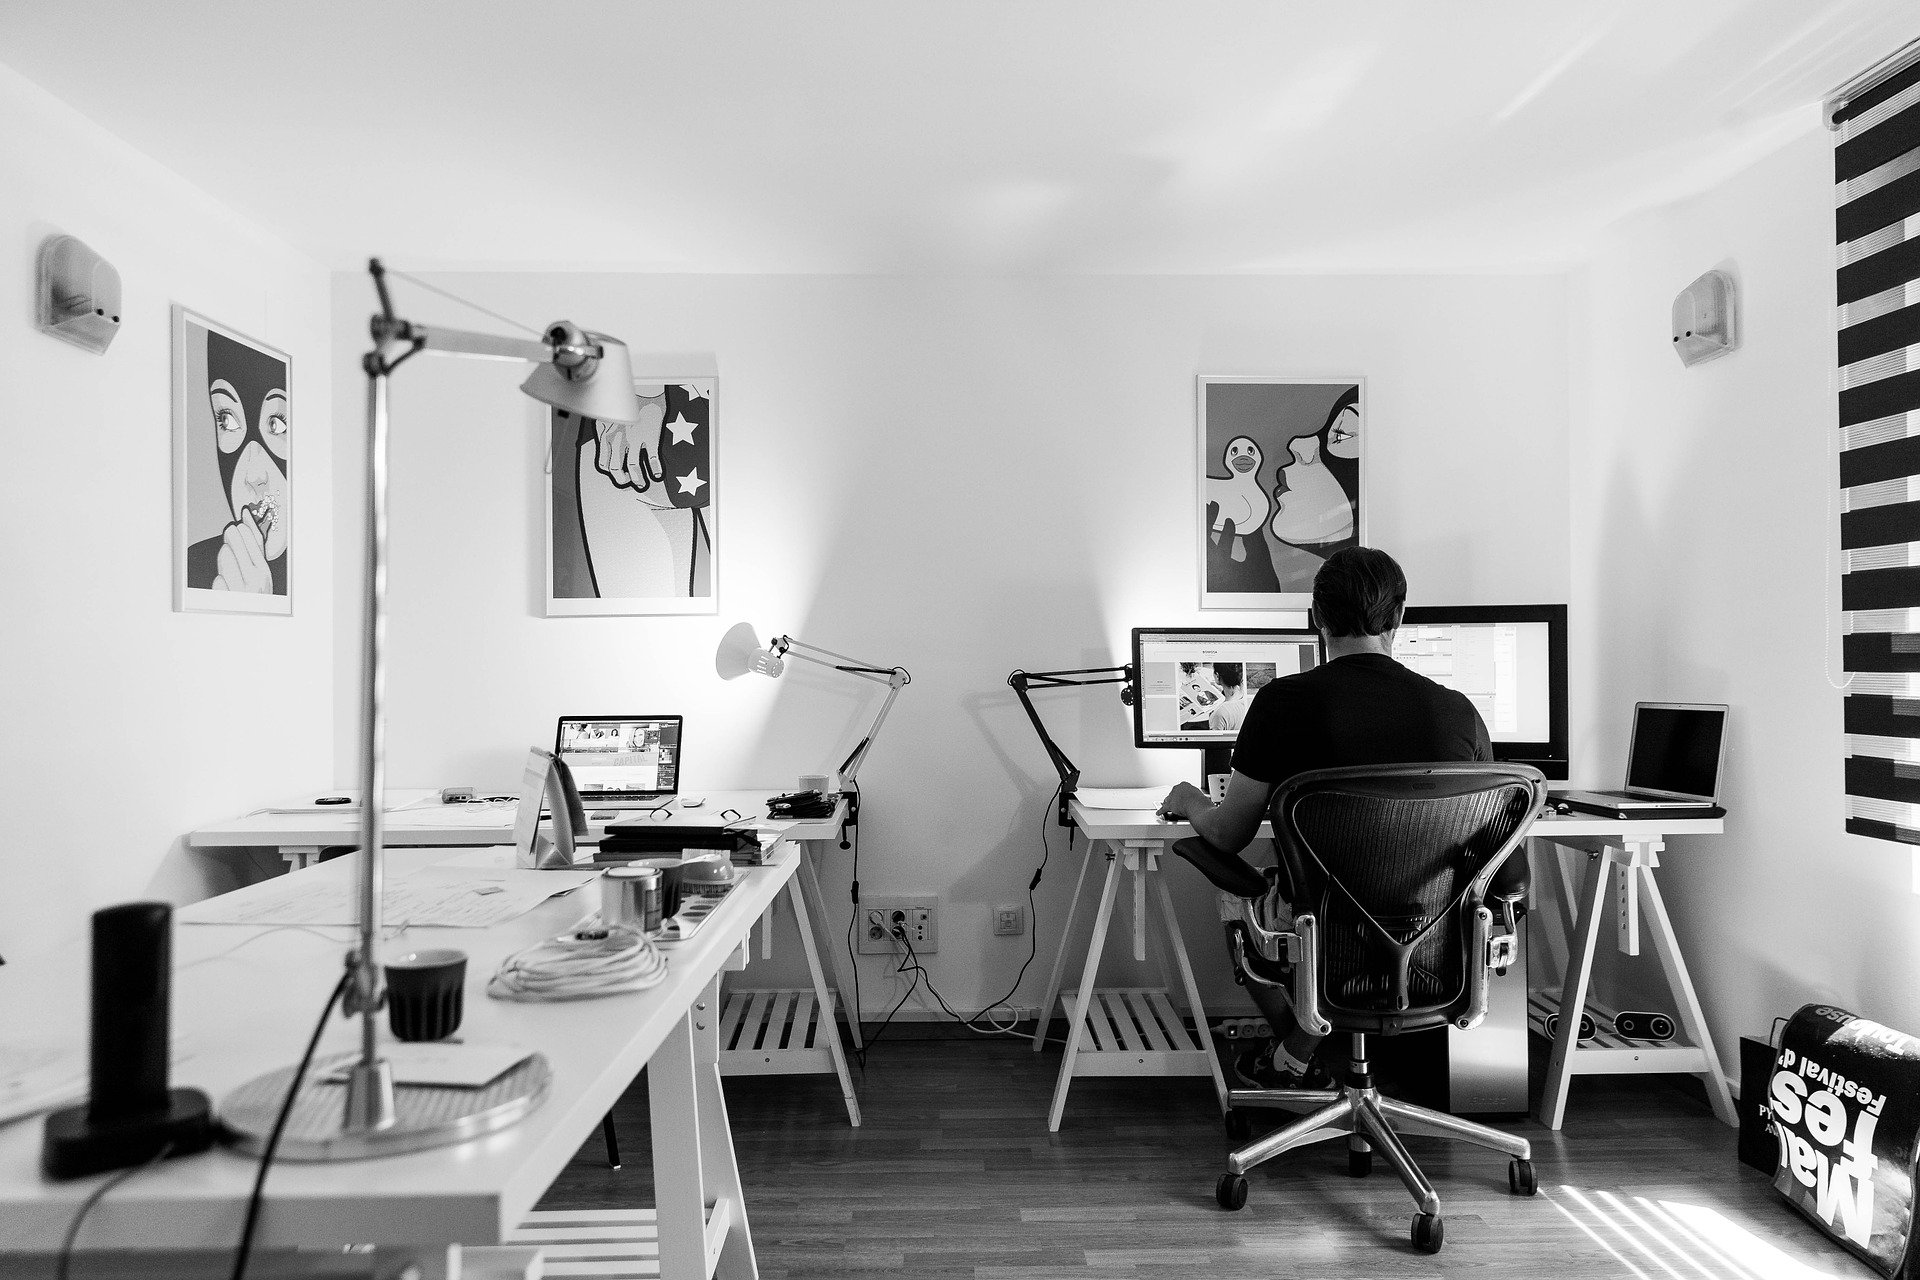 An image of a home office.